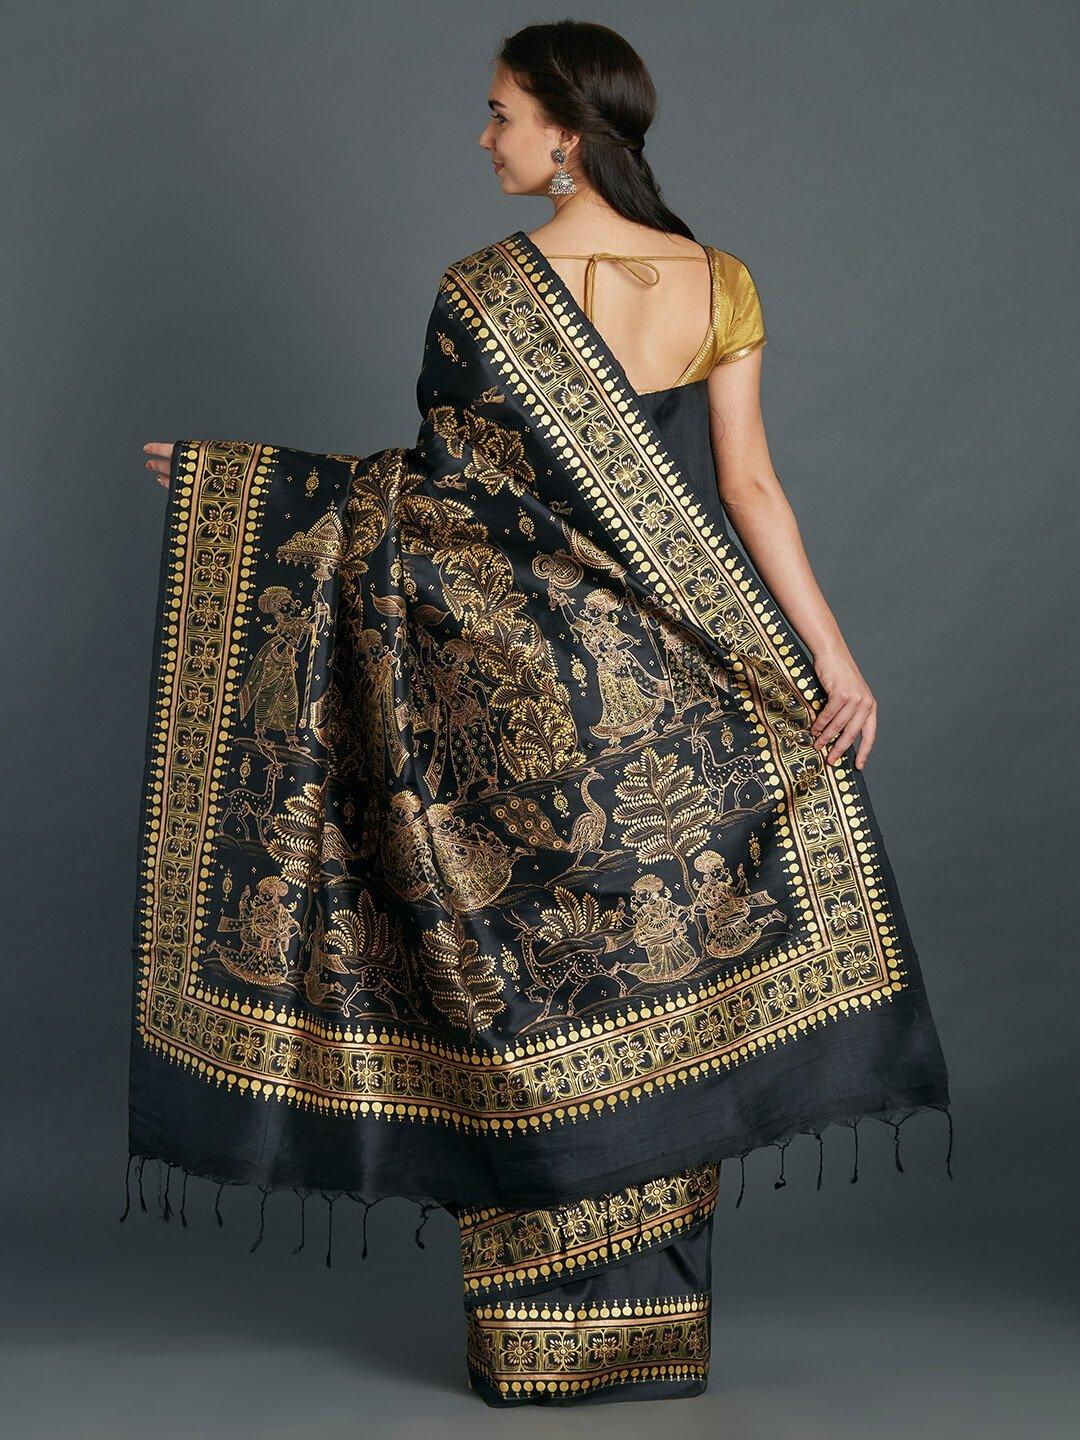 Black Silk Saree with handpainted Pattachitra motifs